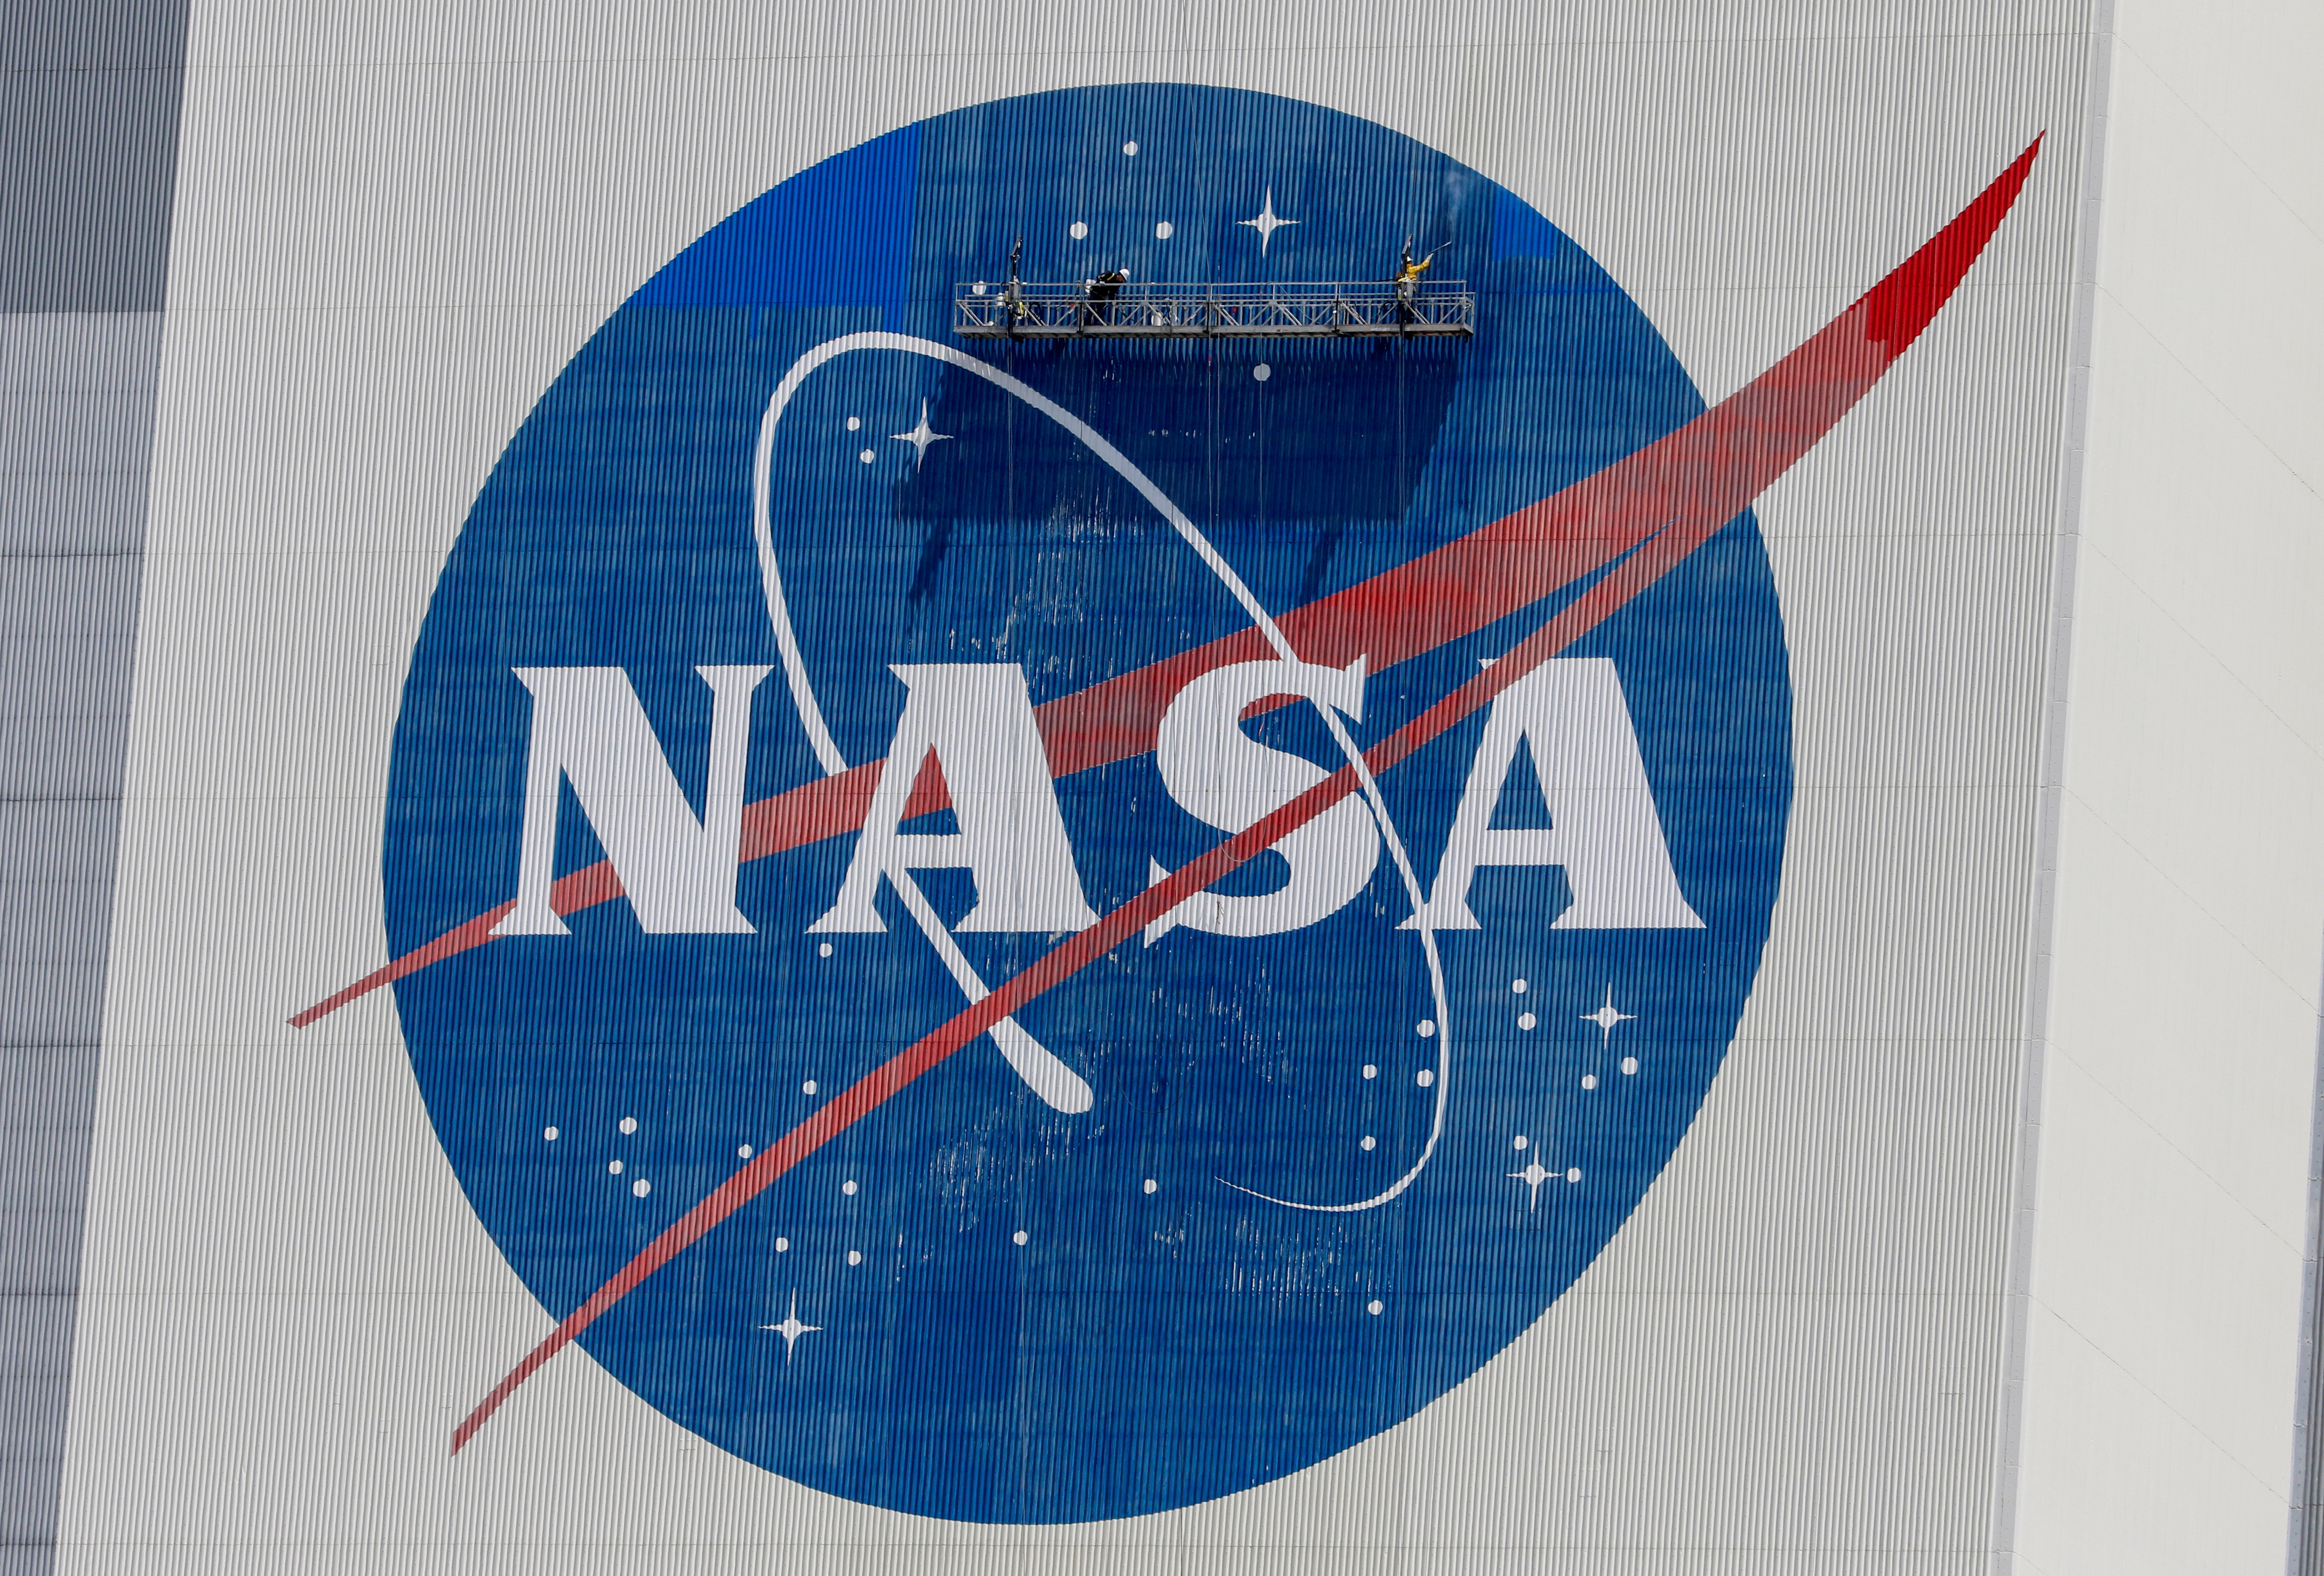 Workers pressure wash the logo of NASA on the Vehicle Assembly Building before SpaceX will send two NASA astronauts to the International Space Station aboard its Falcon 9 rocket, at the Kennedy Space Center in Cape Canaveral, Florida, U.S., May 19, 2020. REUTERS/Joe Skipper/File Photo